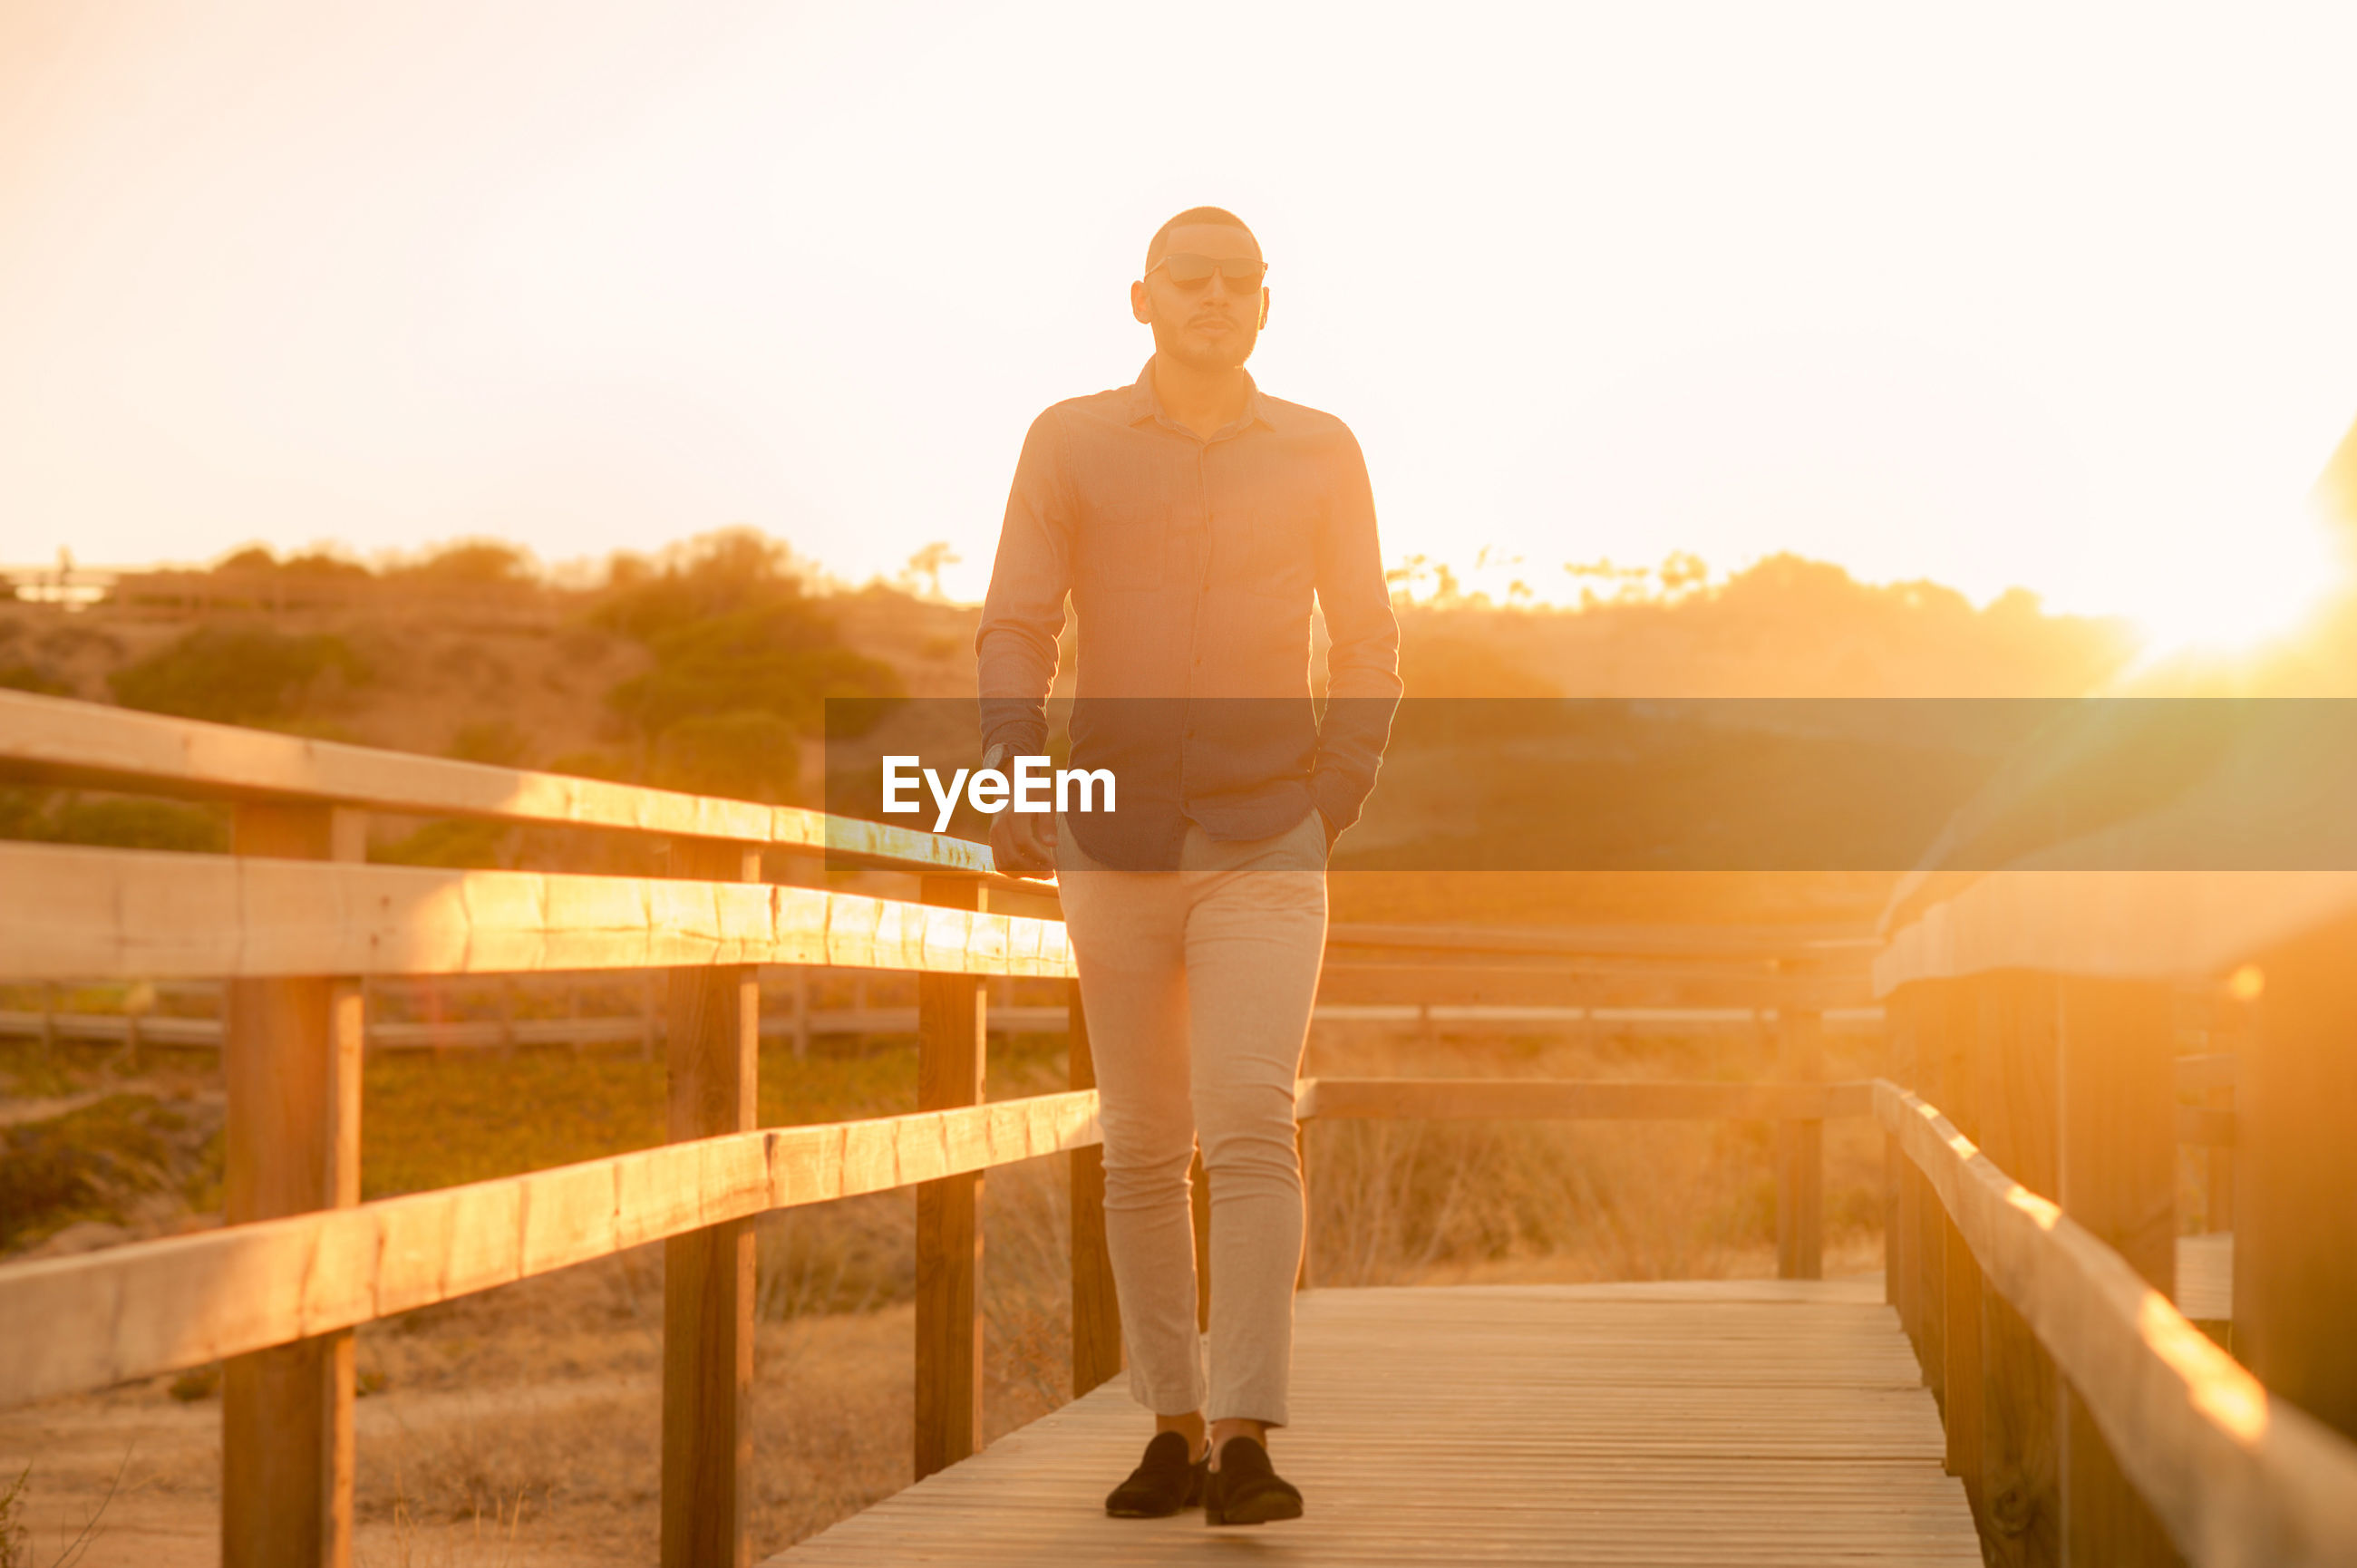 Full length of man standing by railing during sunset